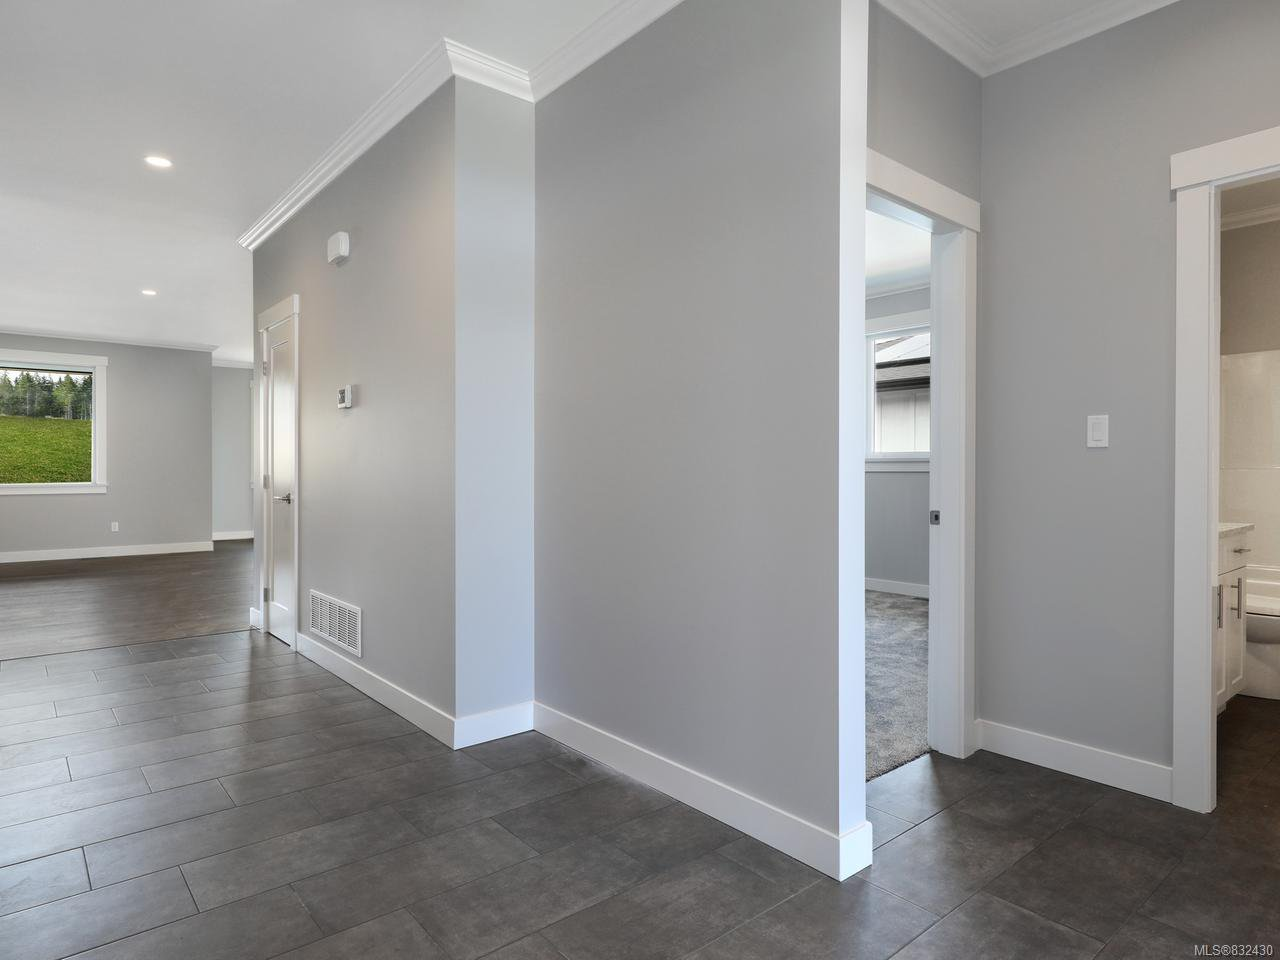 Photo 17: Photos: 3570 Wisteria Pl in CAMPBELL RIVER: CR Willow Point House for sale (Campbell River)  : MLS®# 832430